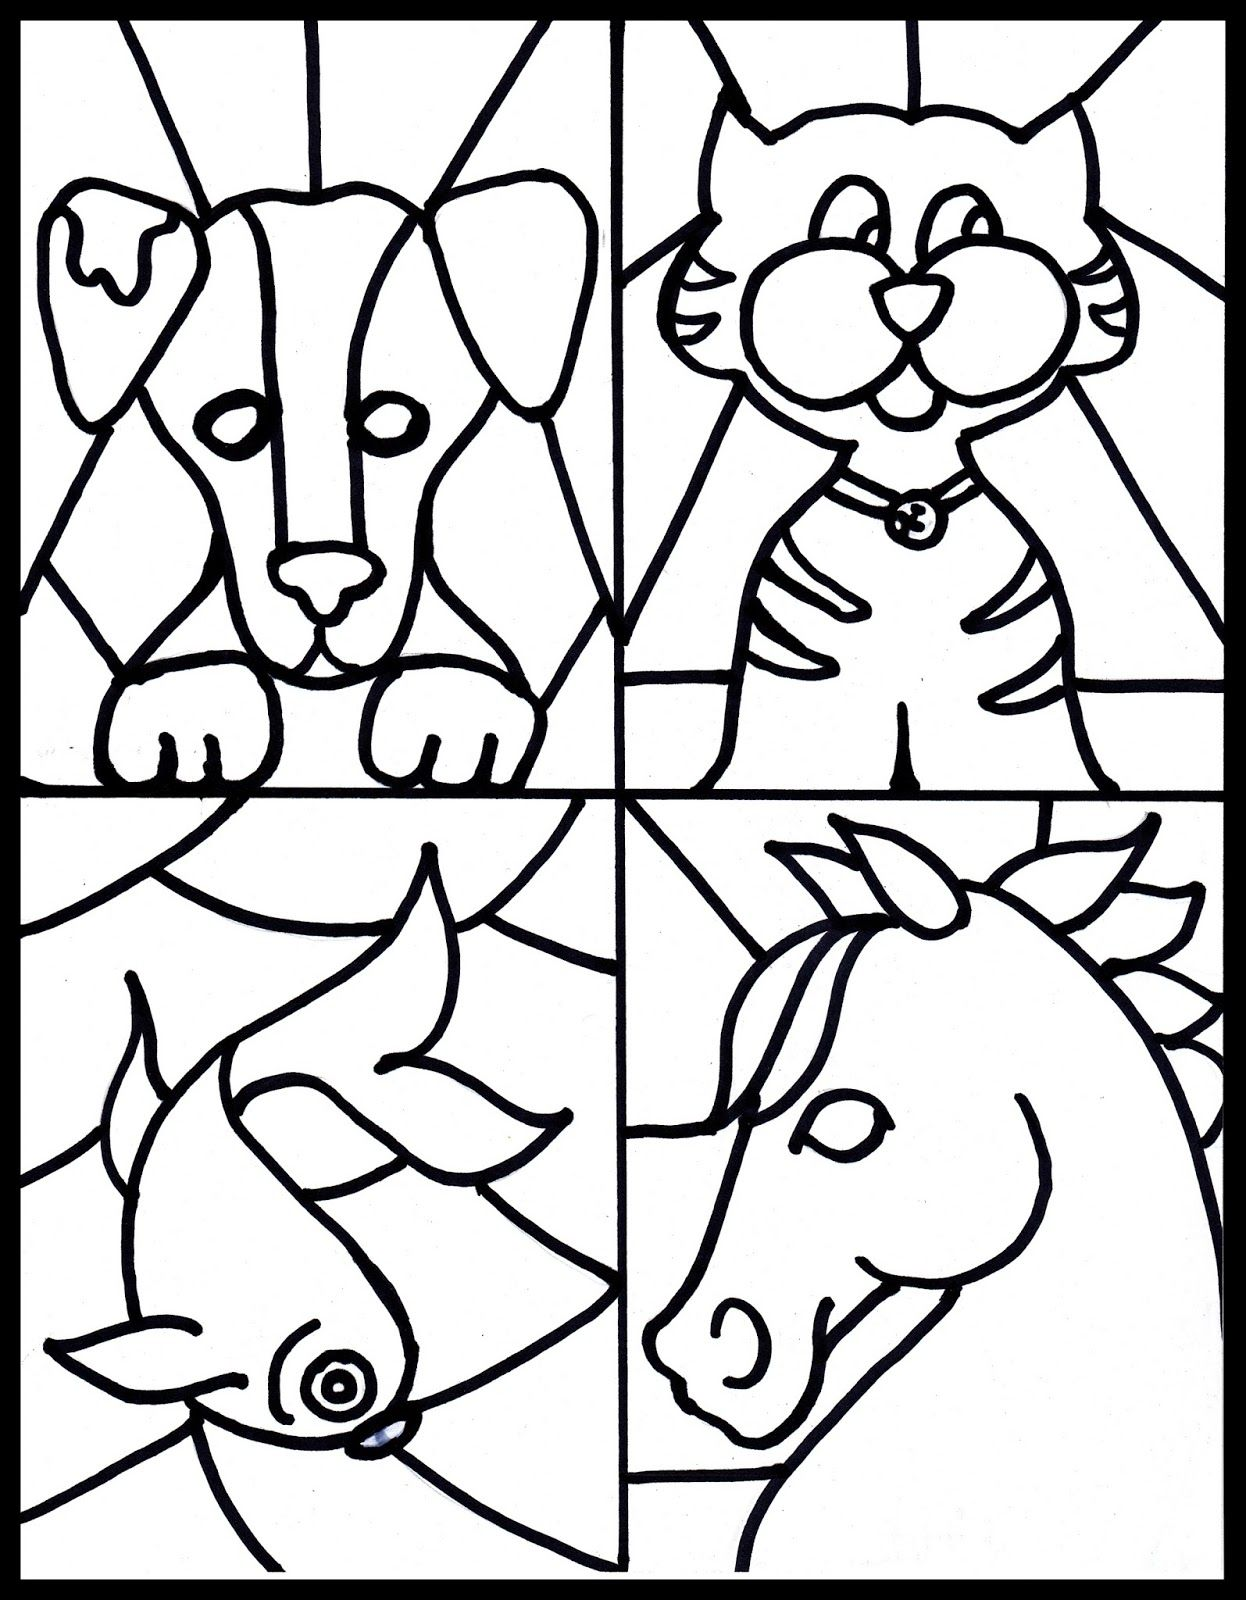 Free stained glass pet printable-Kid's craft to go with